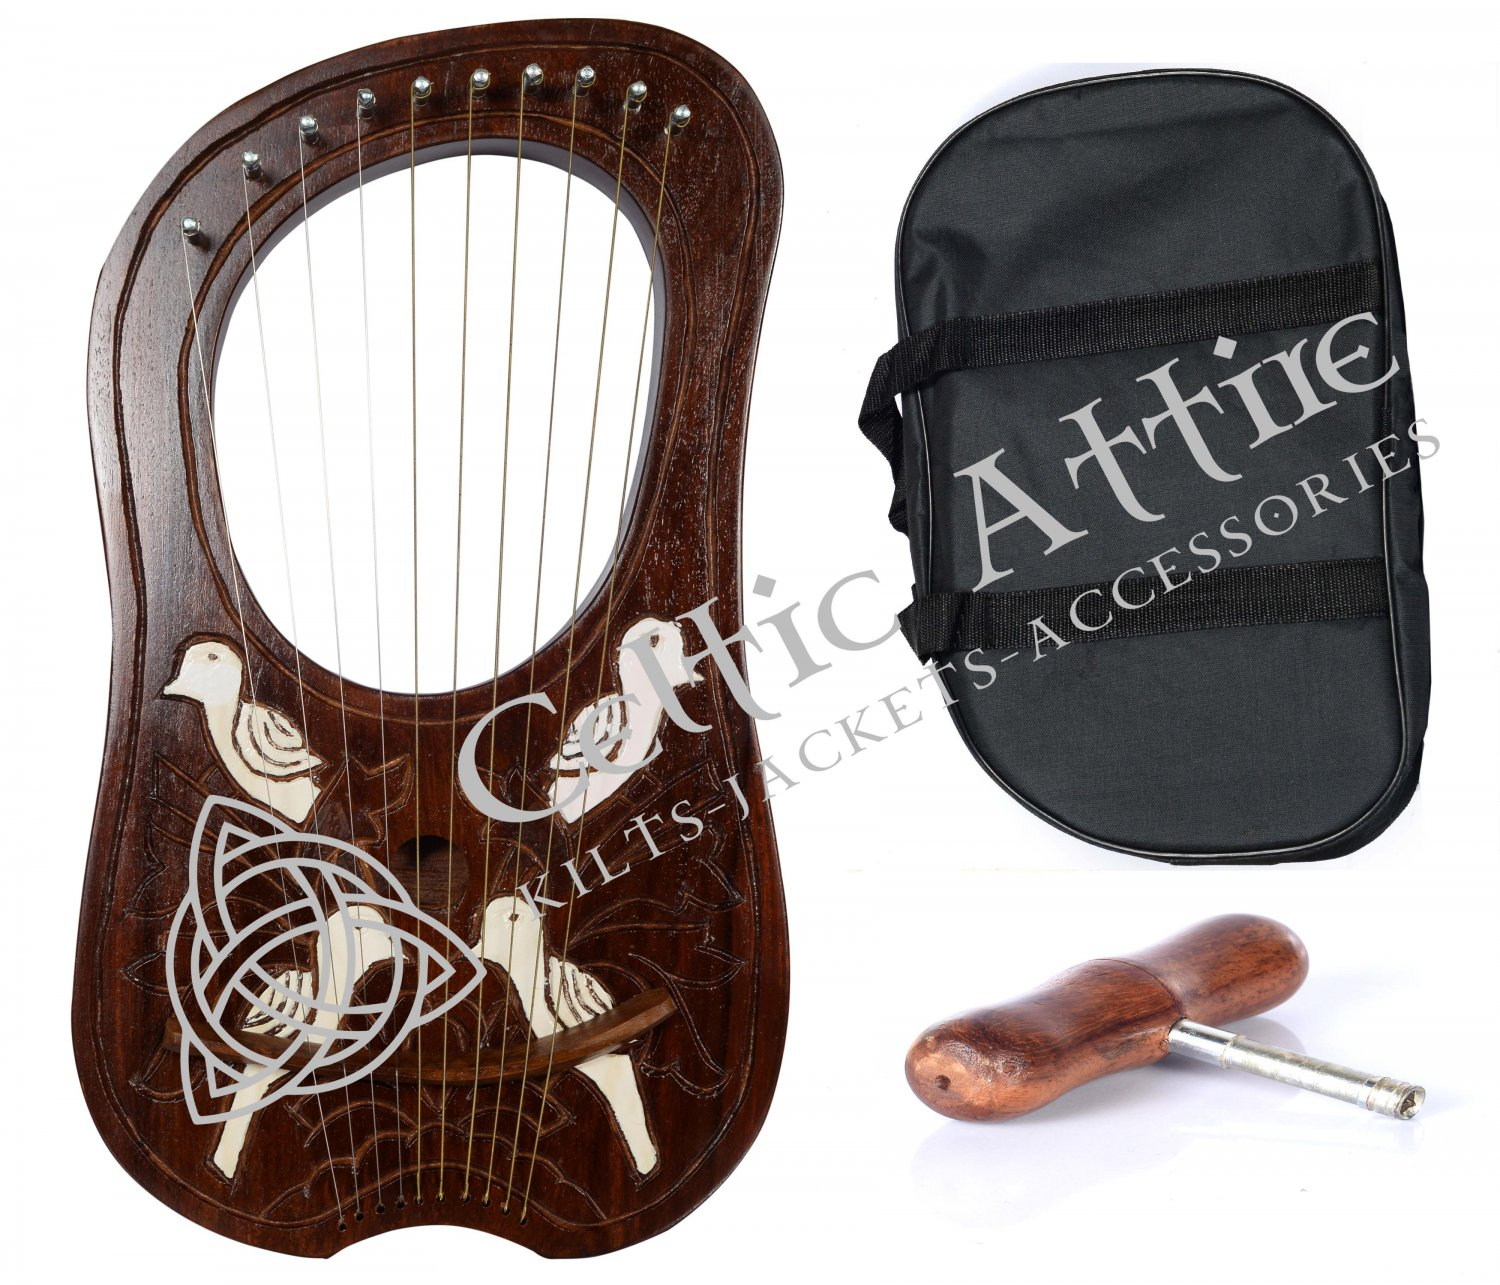 NEW LYRE HARP 10 Metal Strings Rosewood Hand Engraved With Black Bag and Key